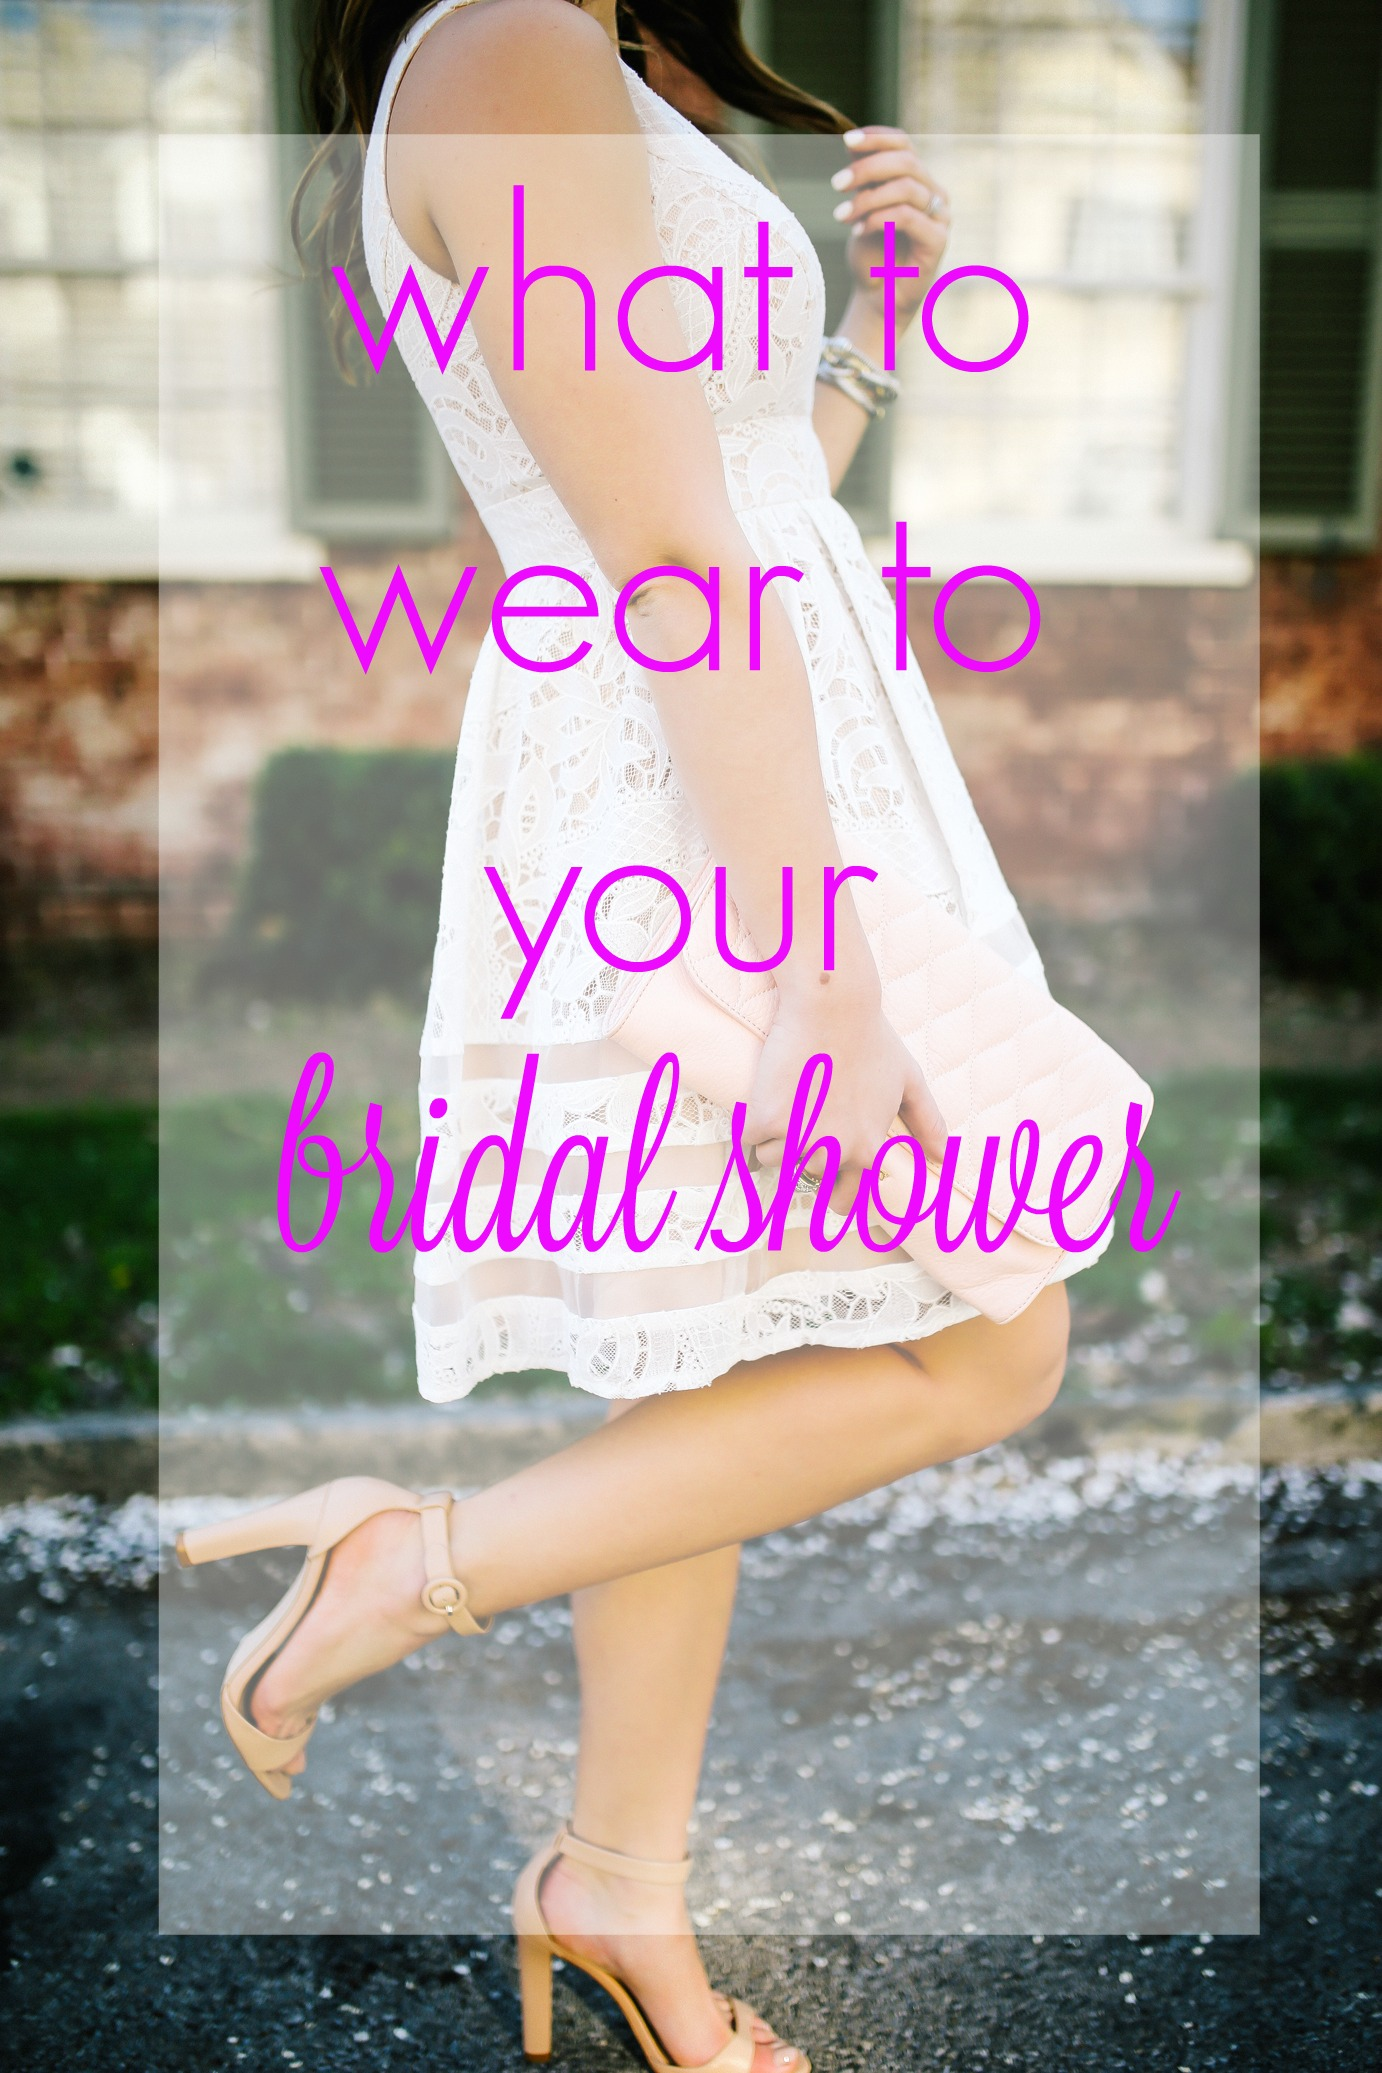 He bridal shower nude #9